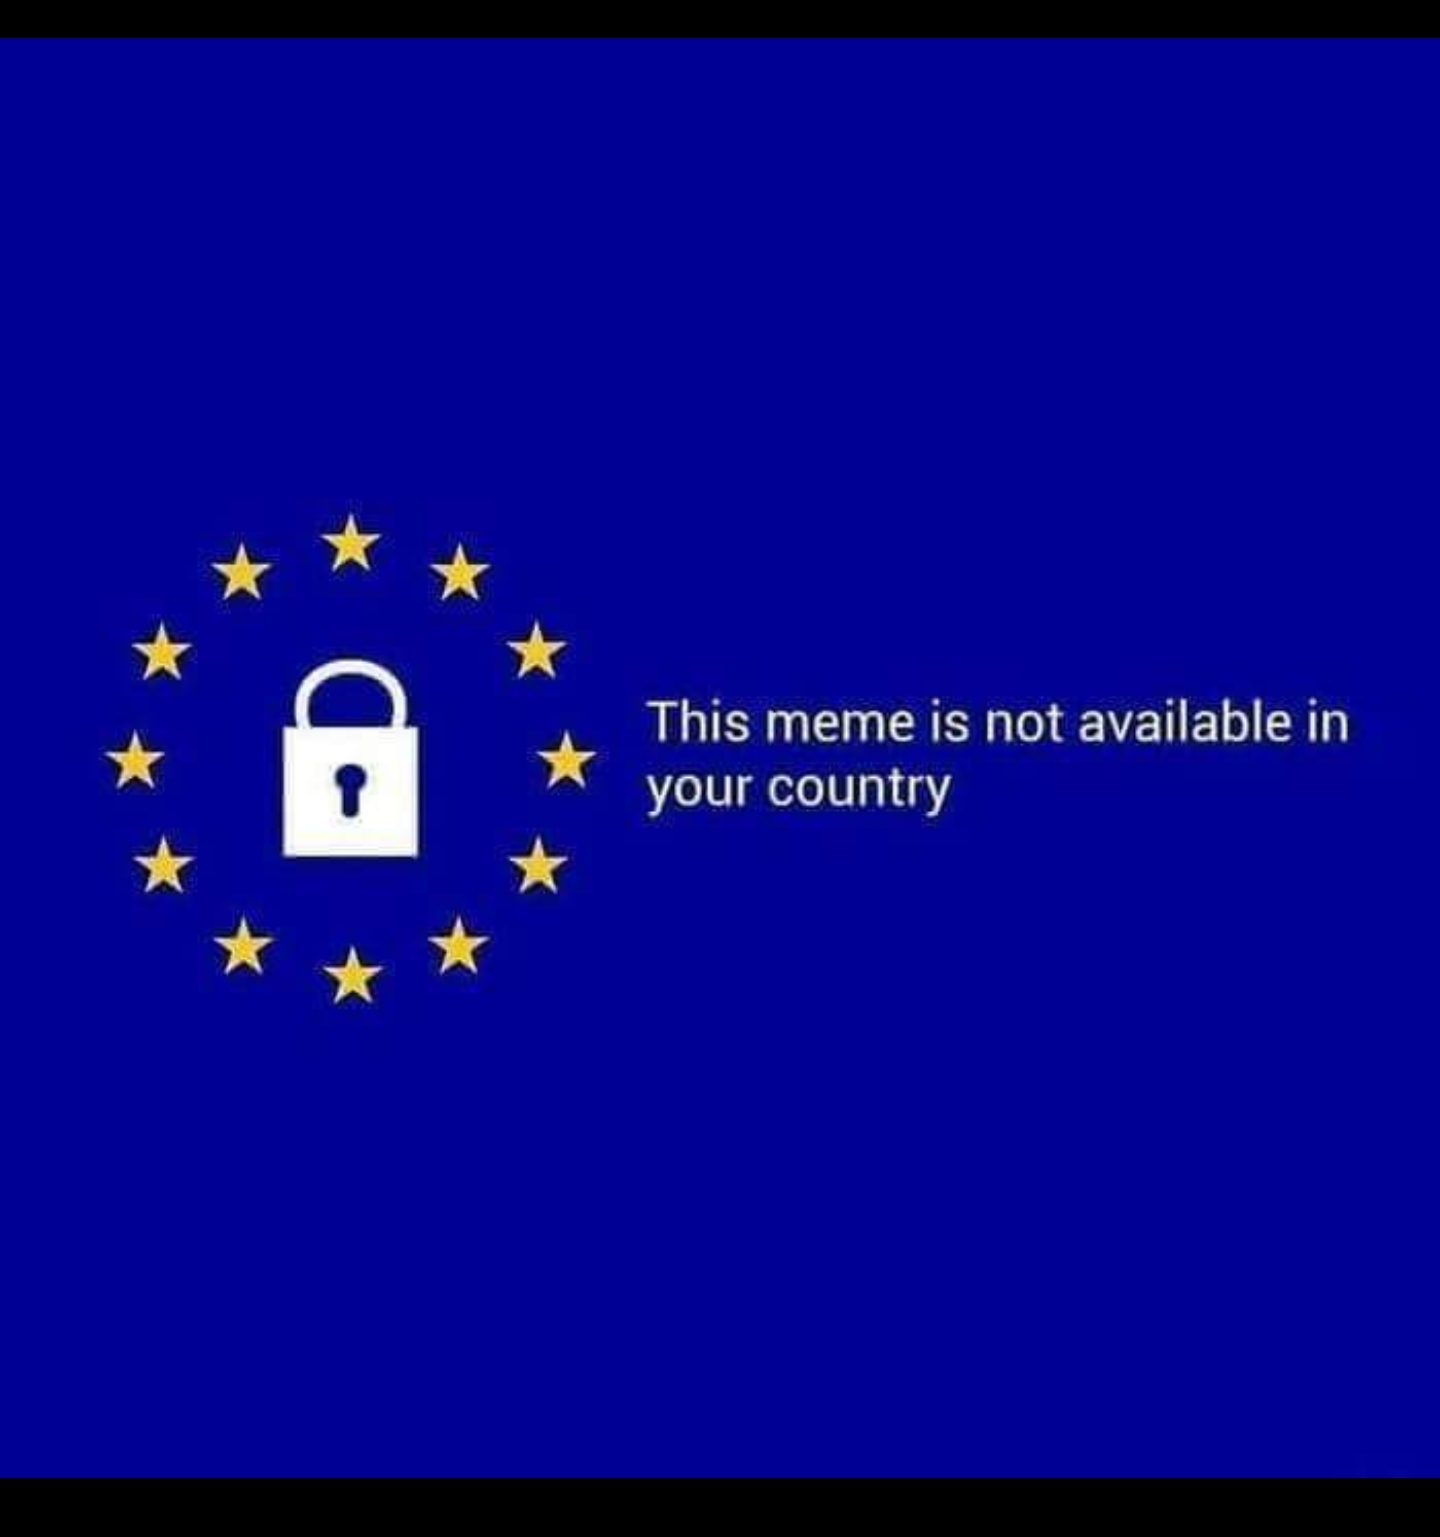 Article 13 has been approved... - meme